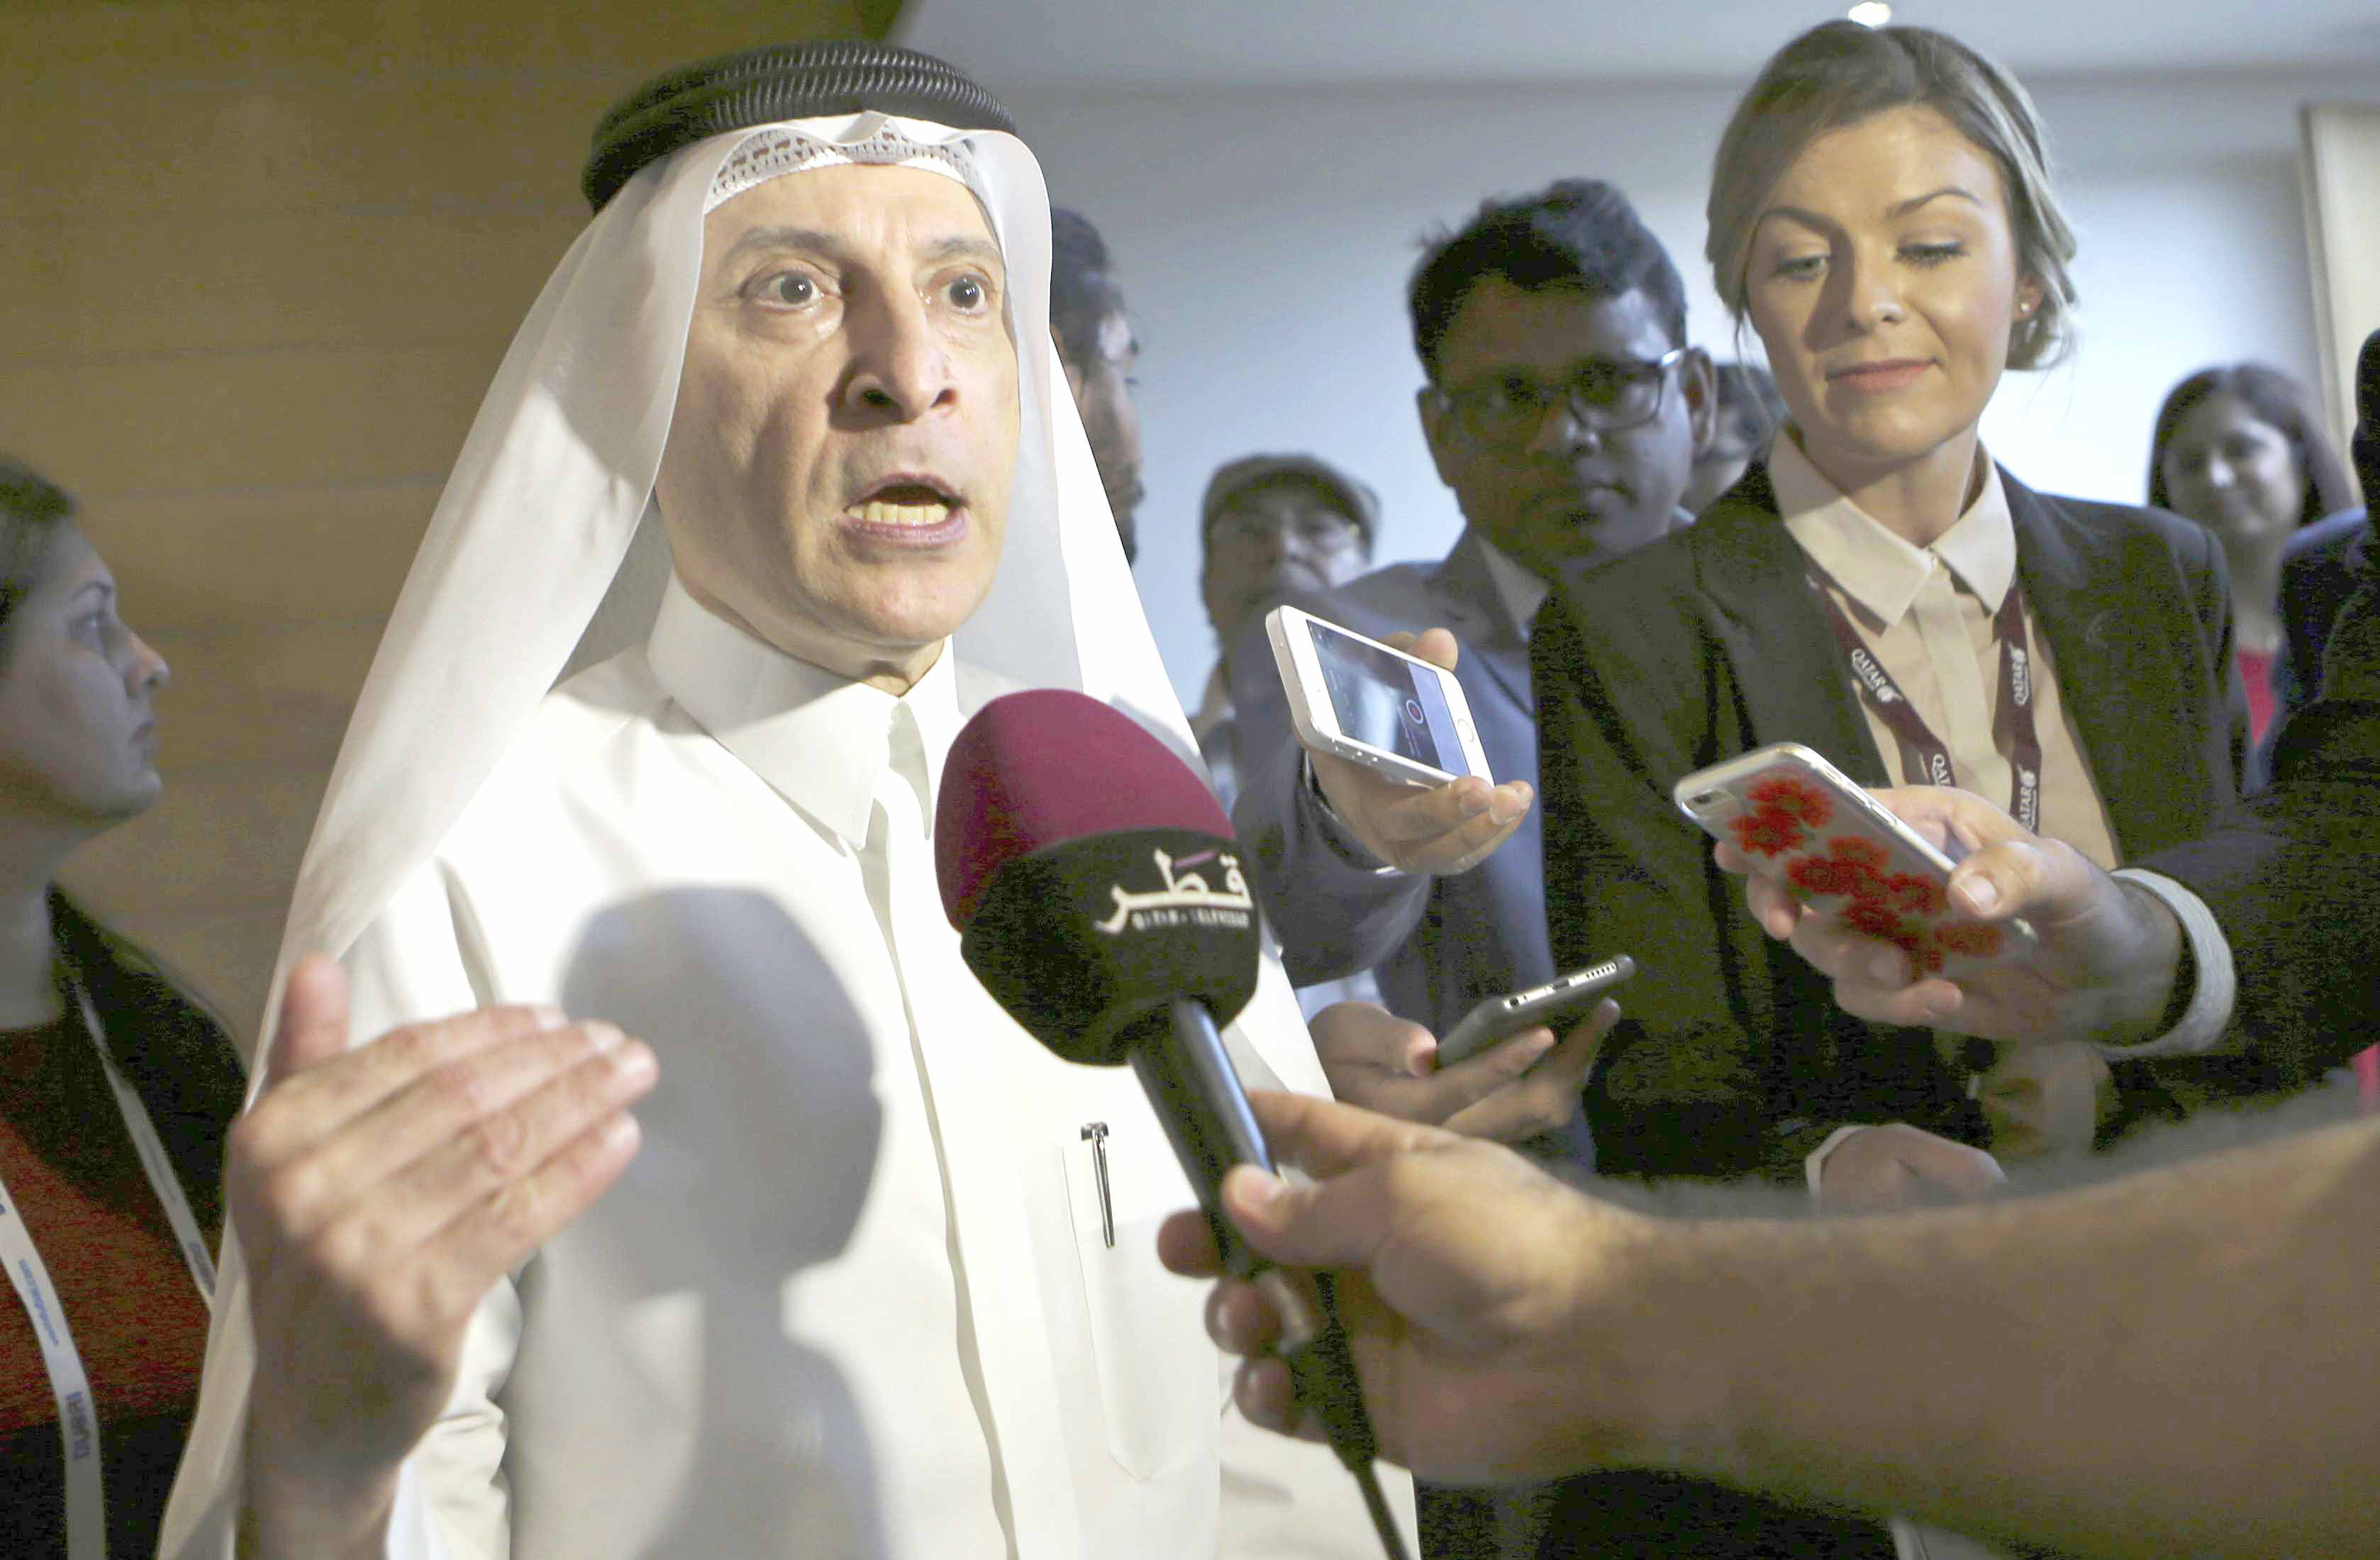 A 2017 file picture shows Akbar al-Baker, secretary-general of the Qatar National Tourism Council and the CEO of Qatar Airways, speaking at a news conference. (AP)